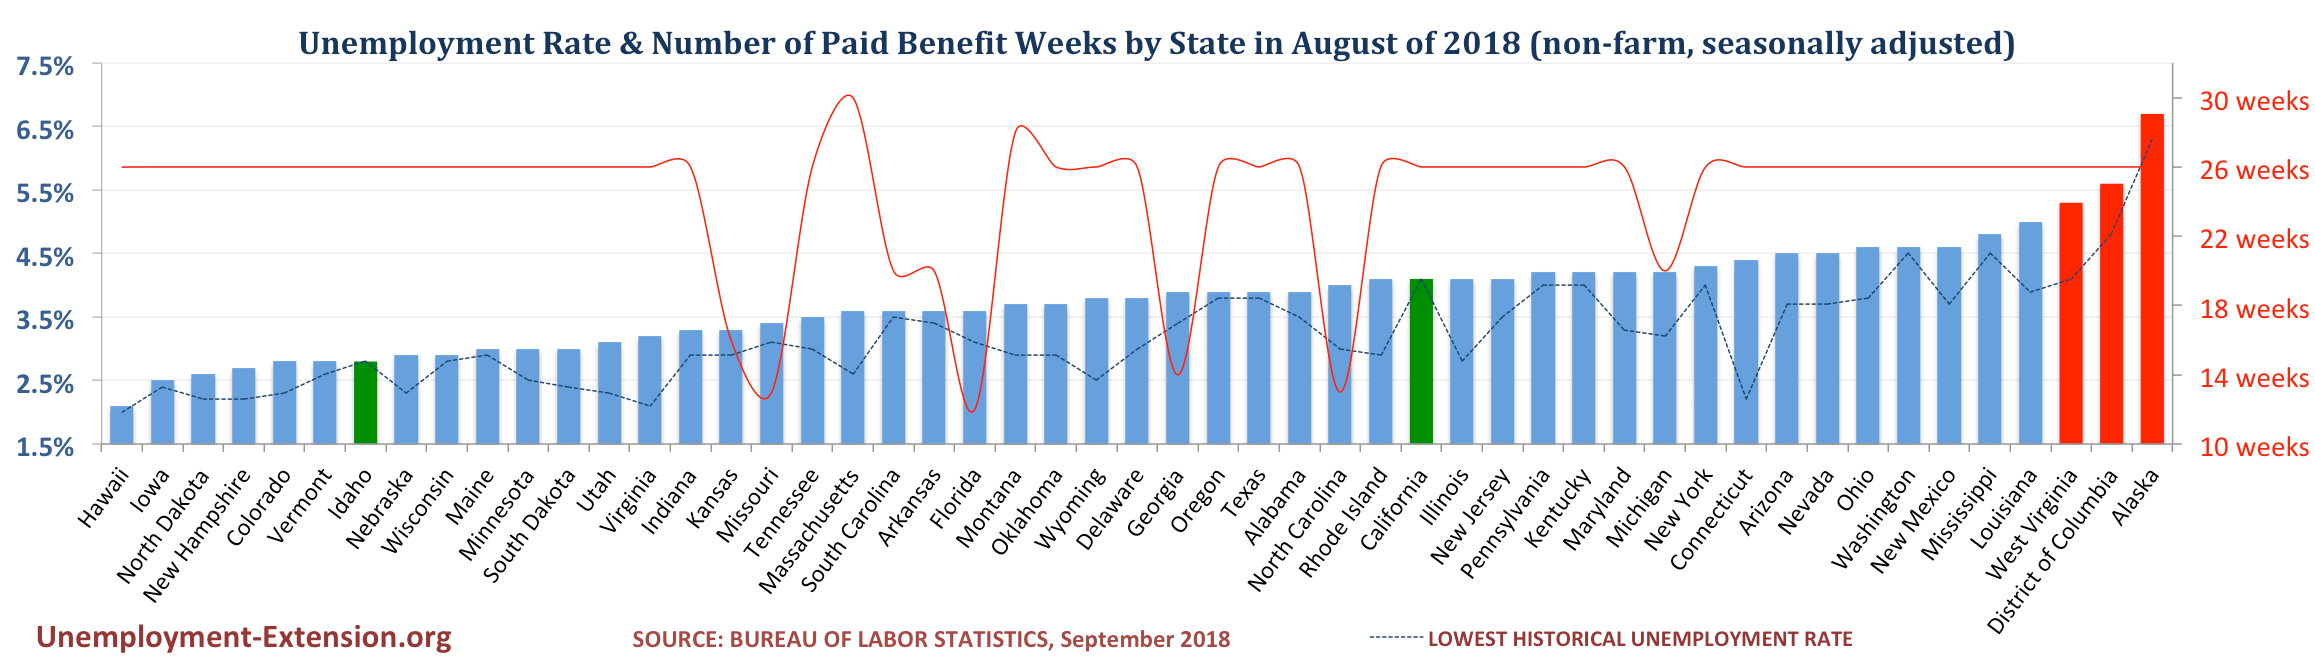 Unemployment Rate and Number of Paid Unemployment Benefit weeks by State (non-farm, seasonally adjusted) in August of 2018